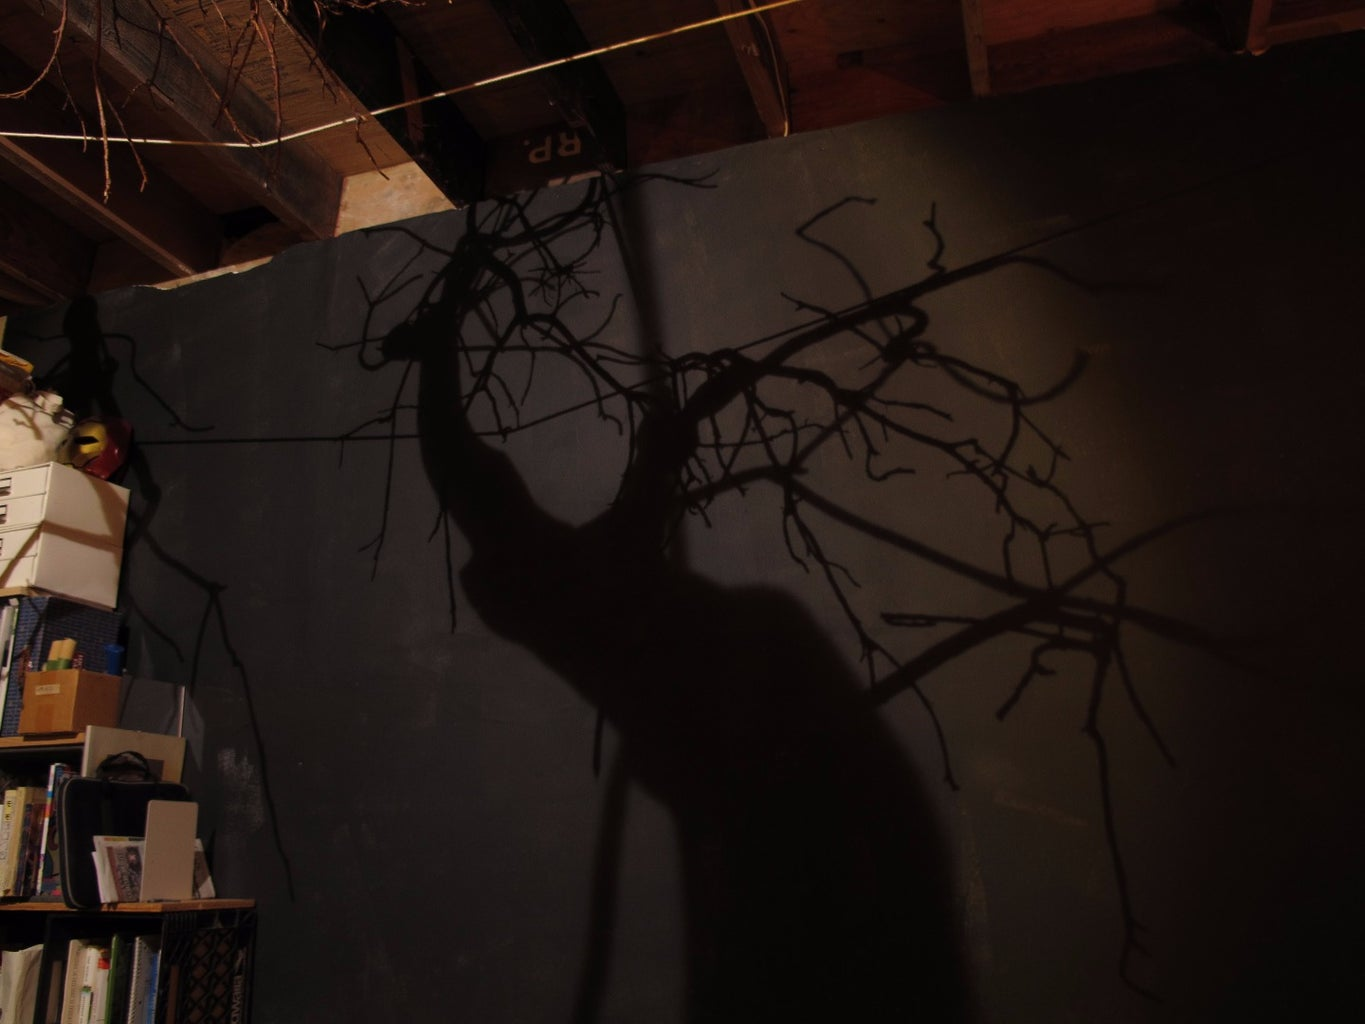 Tree Shadow Light:Night Forest in Your Bedroom